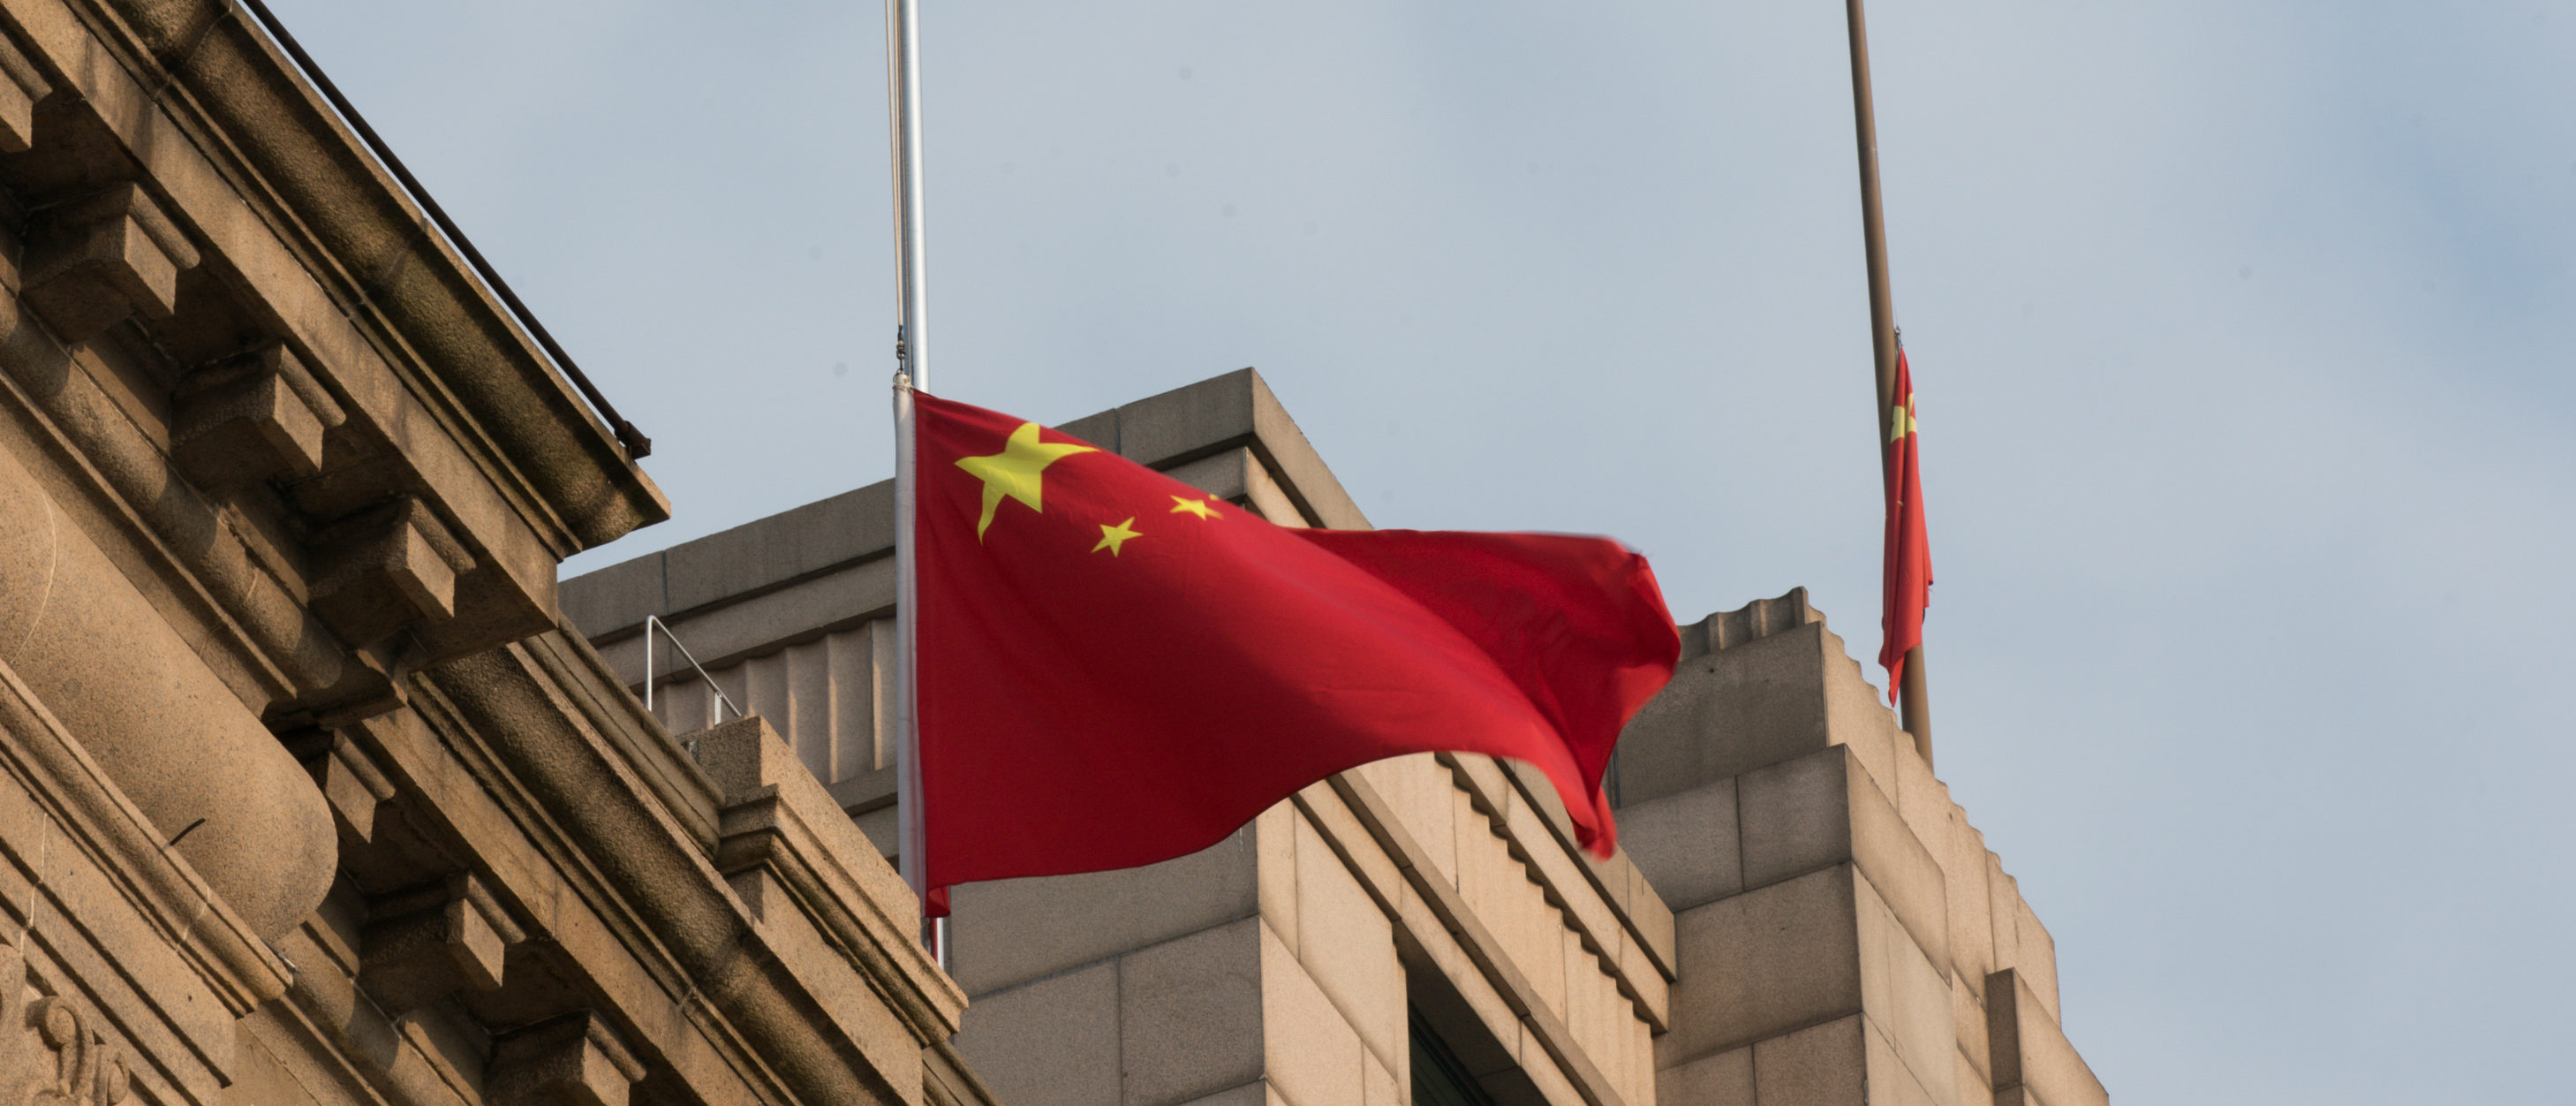 The Chinese national flag flies at half-mast at the Bund to mourn victims of COVID-19 on April 04, 2020 in Shanghai, China. (Yifan Ding/Getty Images)